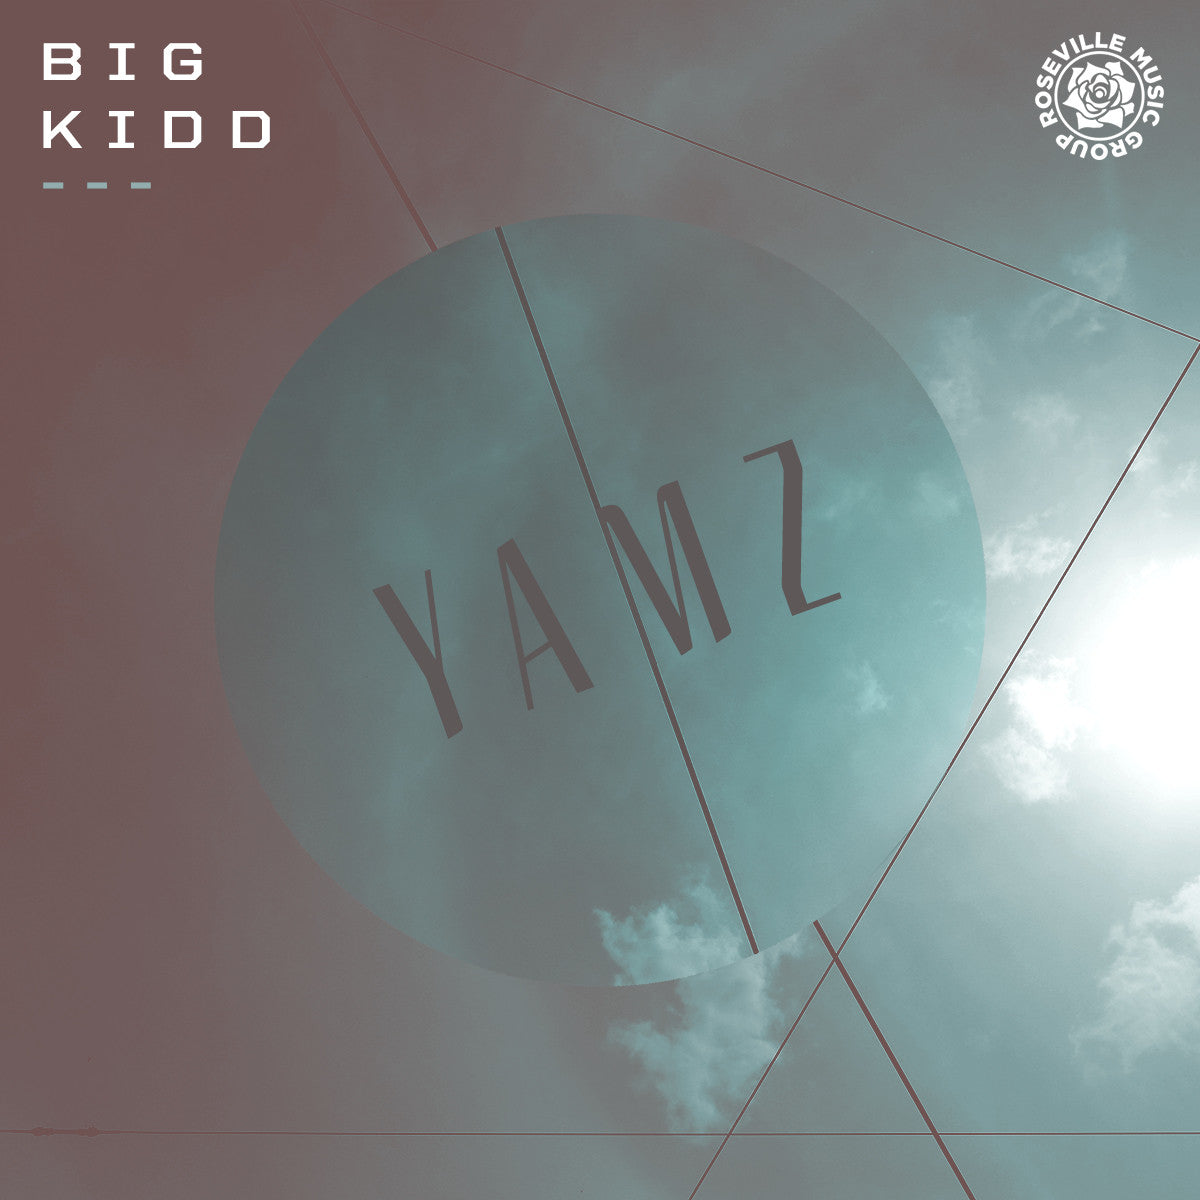 SINGLE - Bigg Kid - Yamz